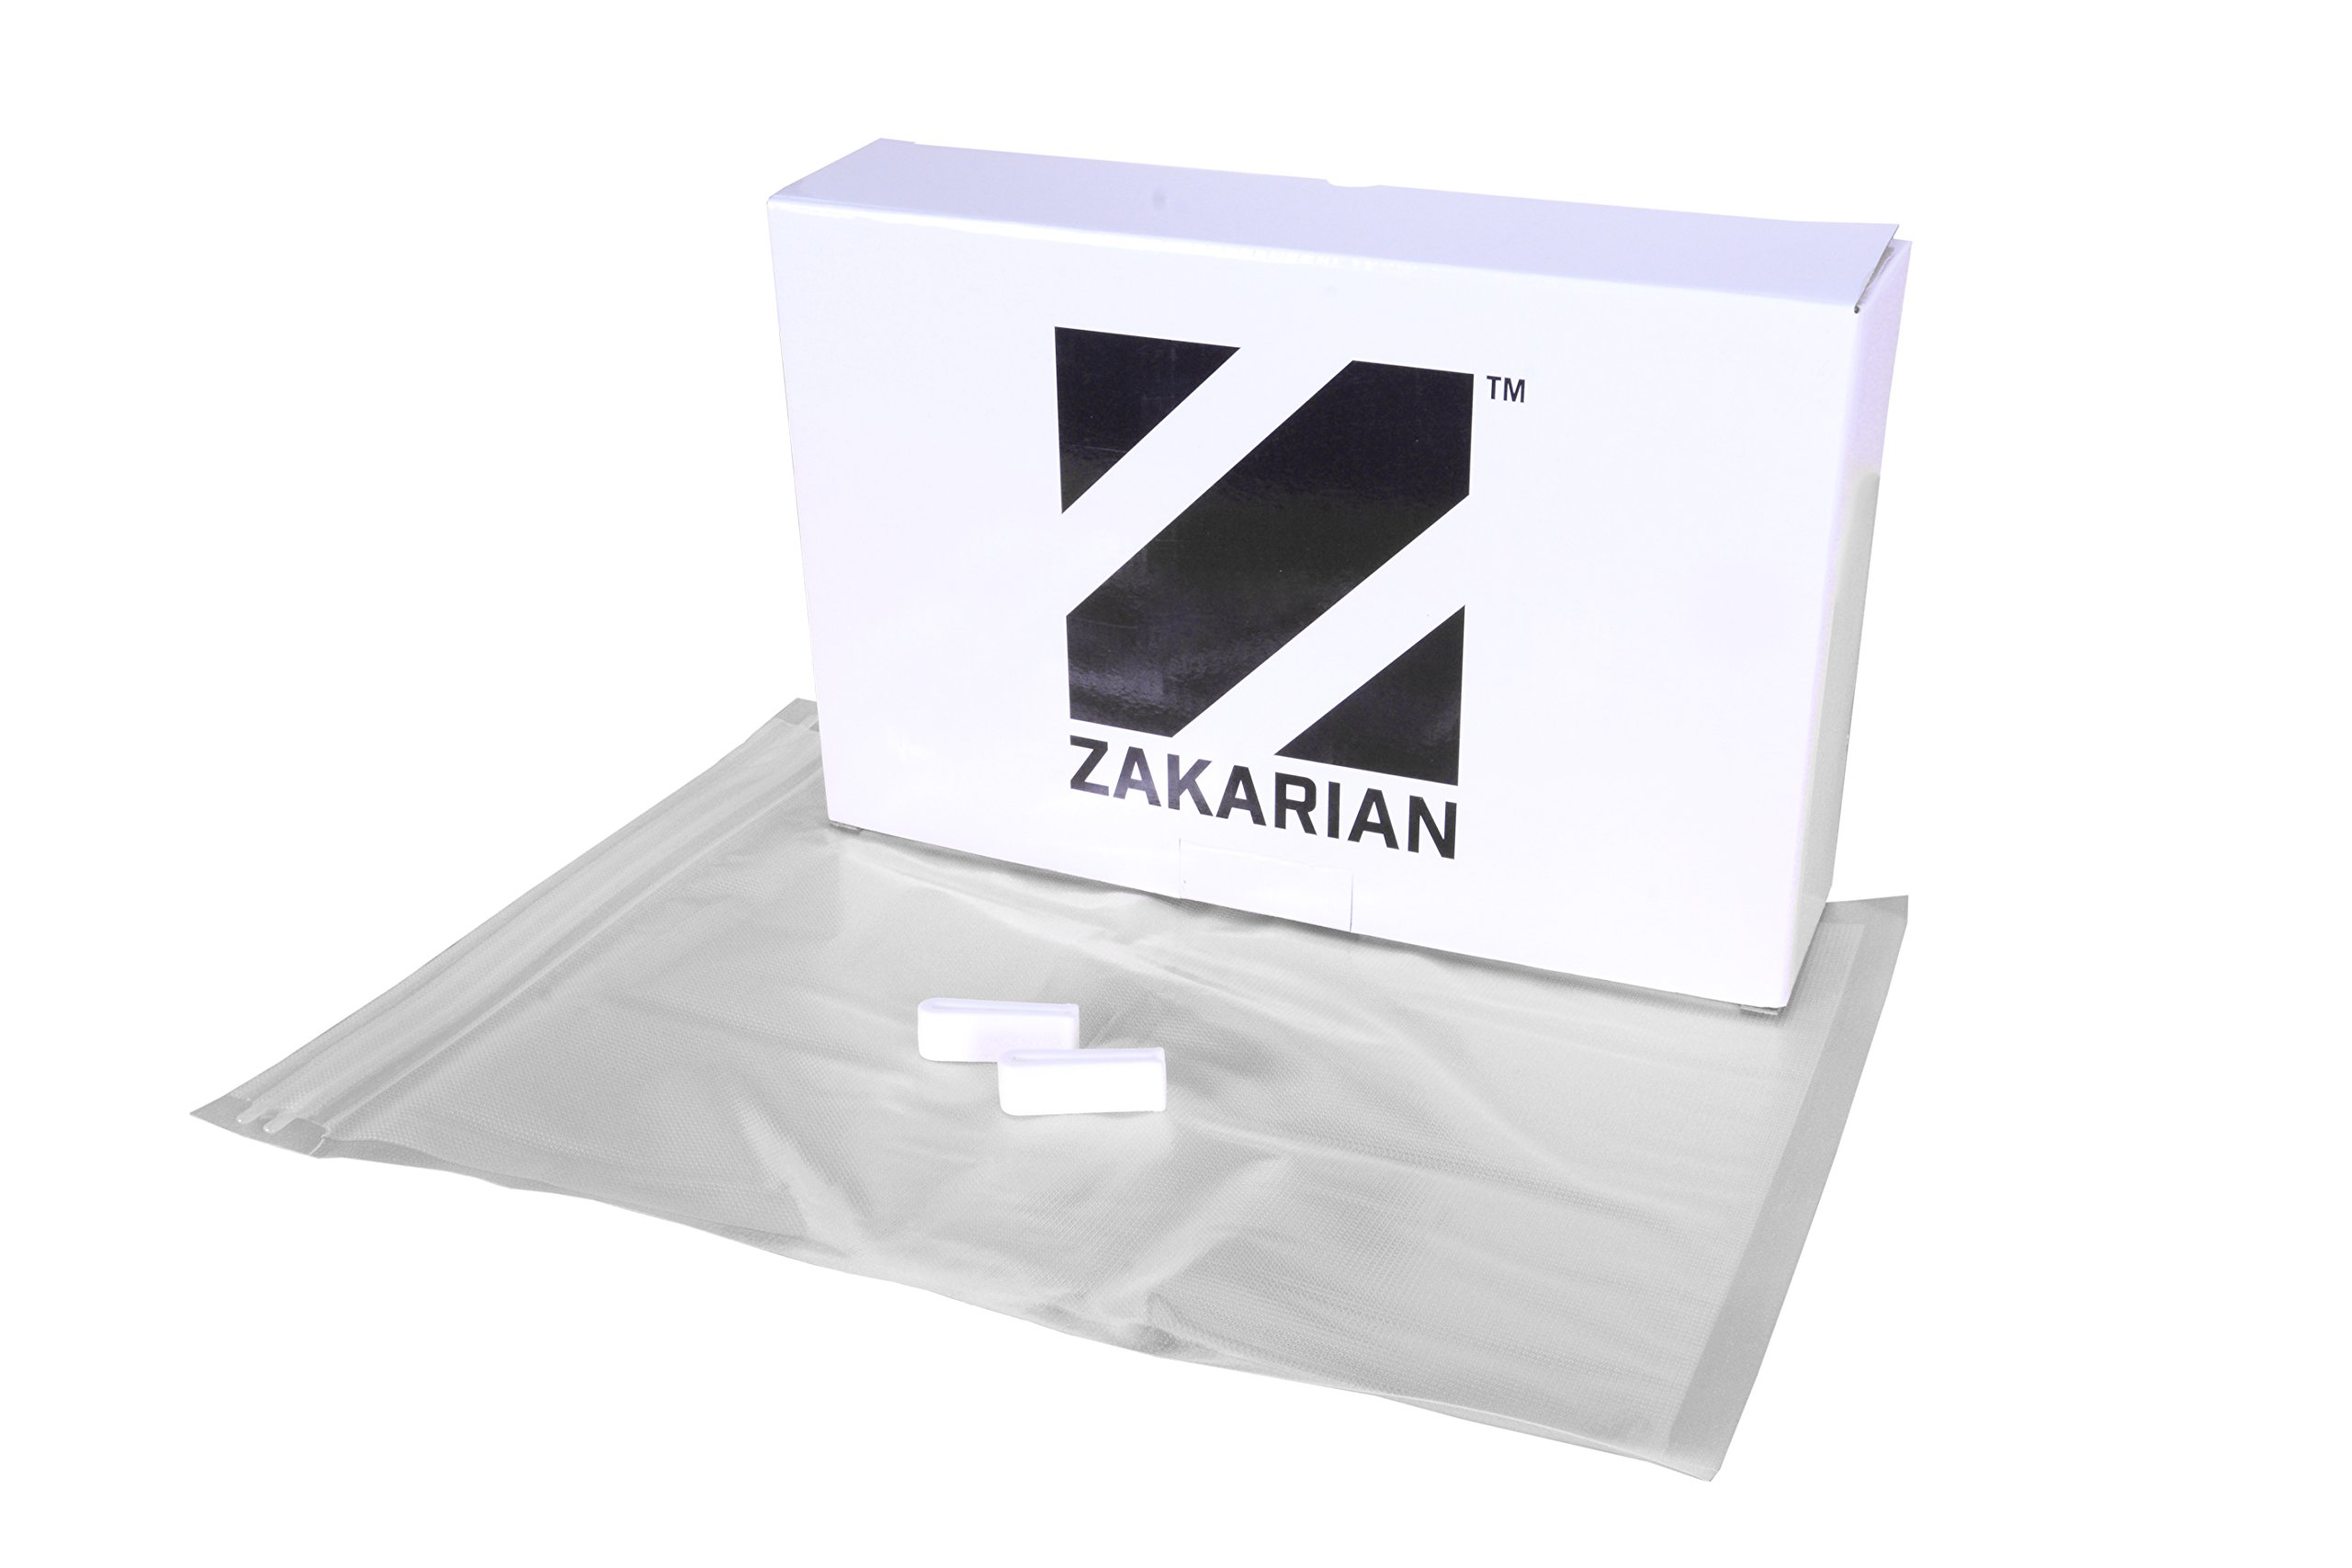 Zakarian Pro for Home Sous Vide Zip Top Bags, Quart or Gallon 25 Count by Chef Geoffrey Zakarian by Zakarian (Image #1)